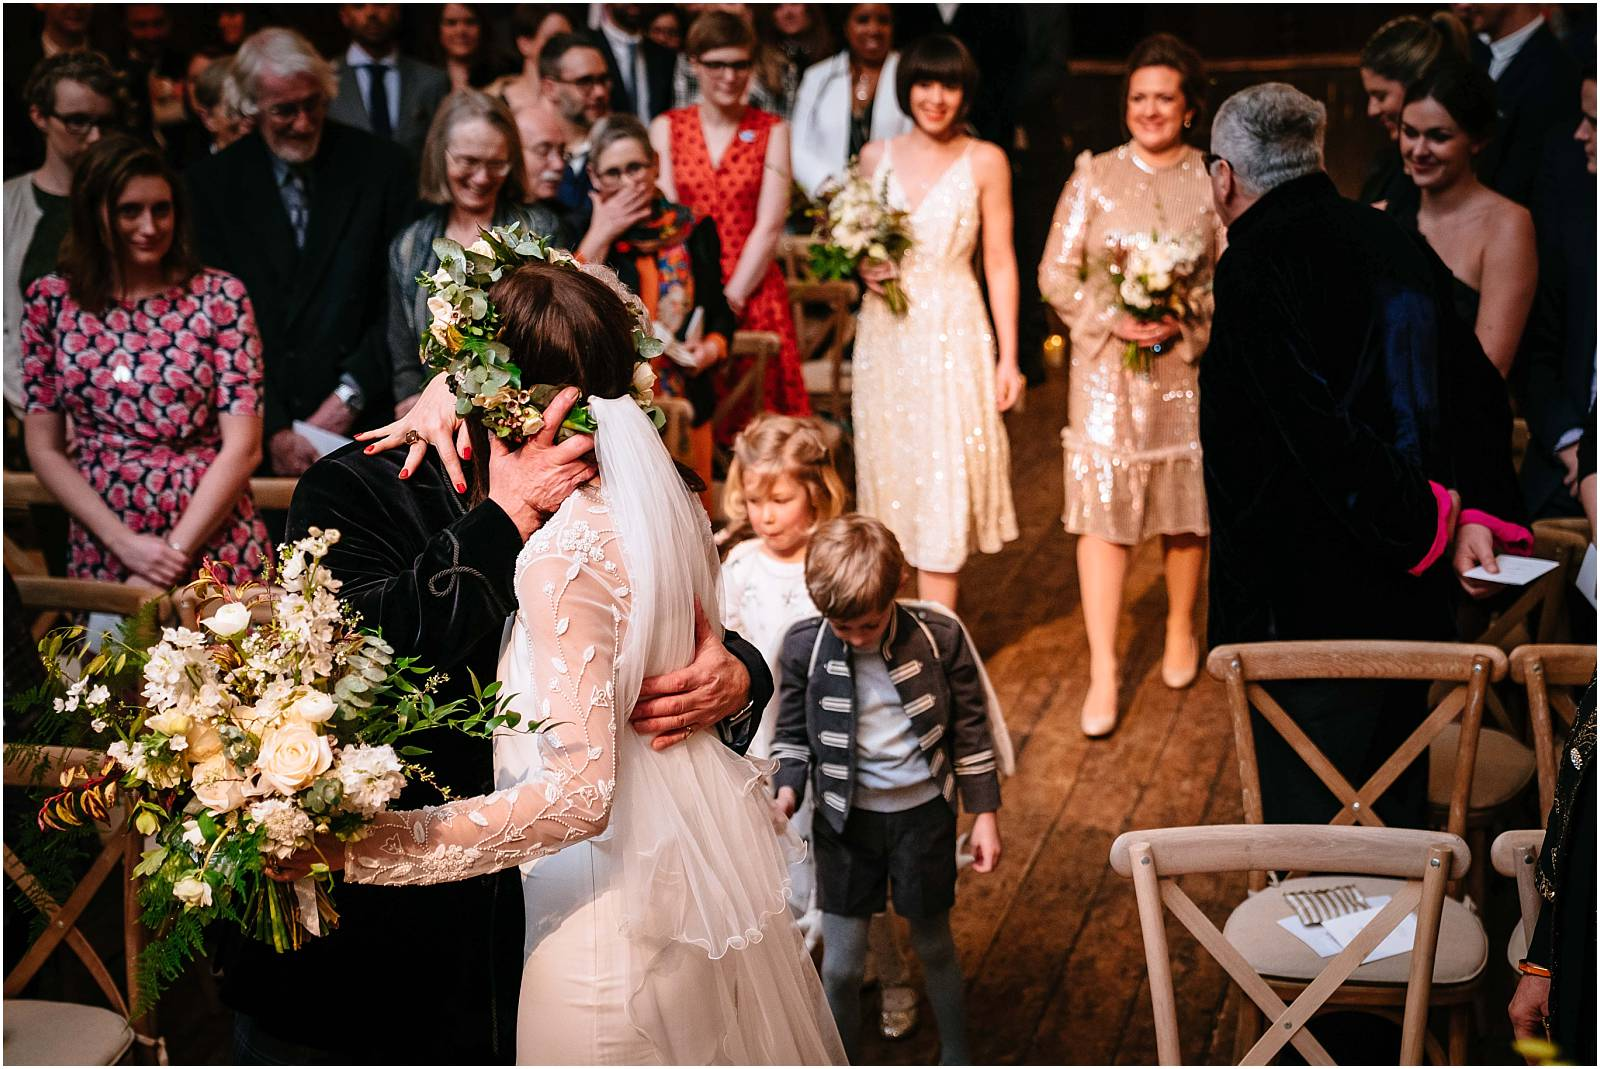 a kiss for dad at the end of the aisle